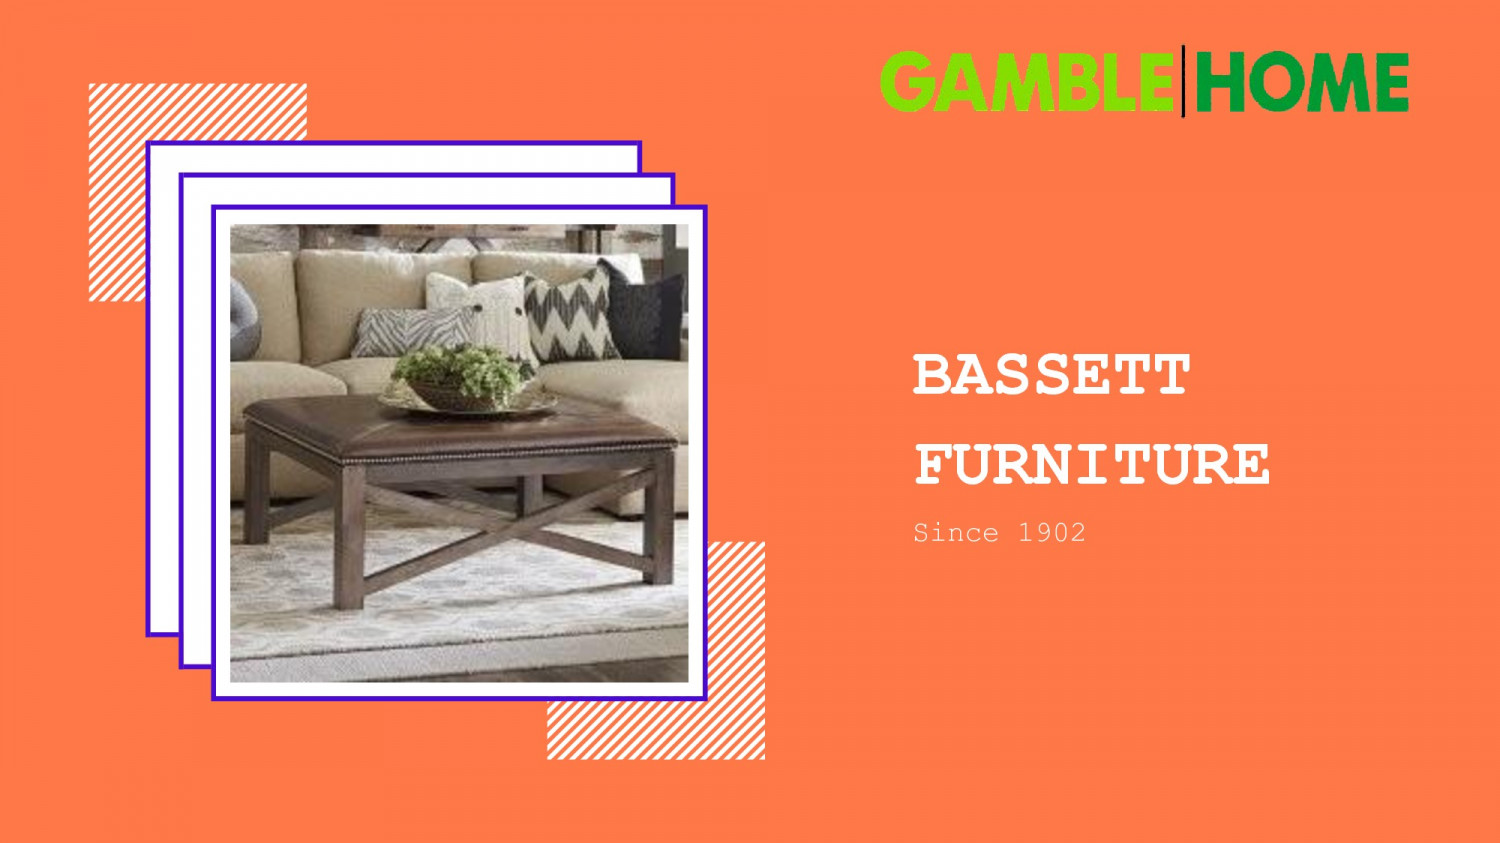 Bassett Furniture Searcy AR - Gamble Home Infographic